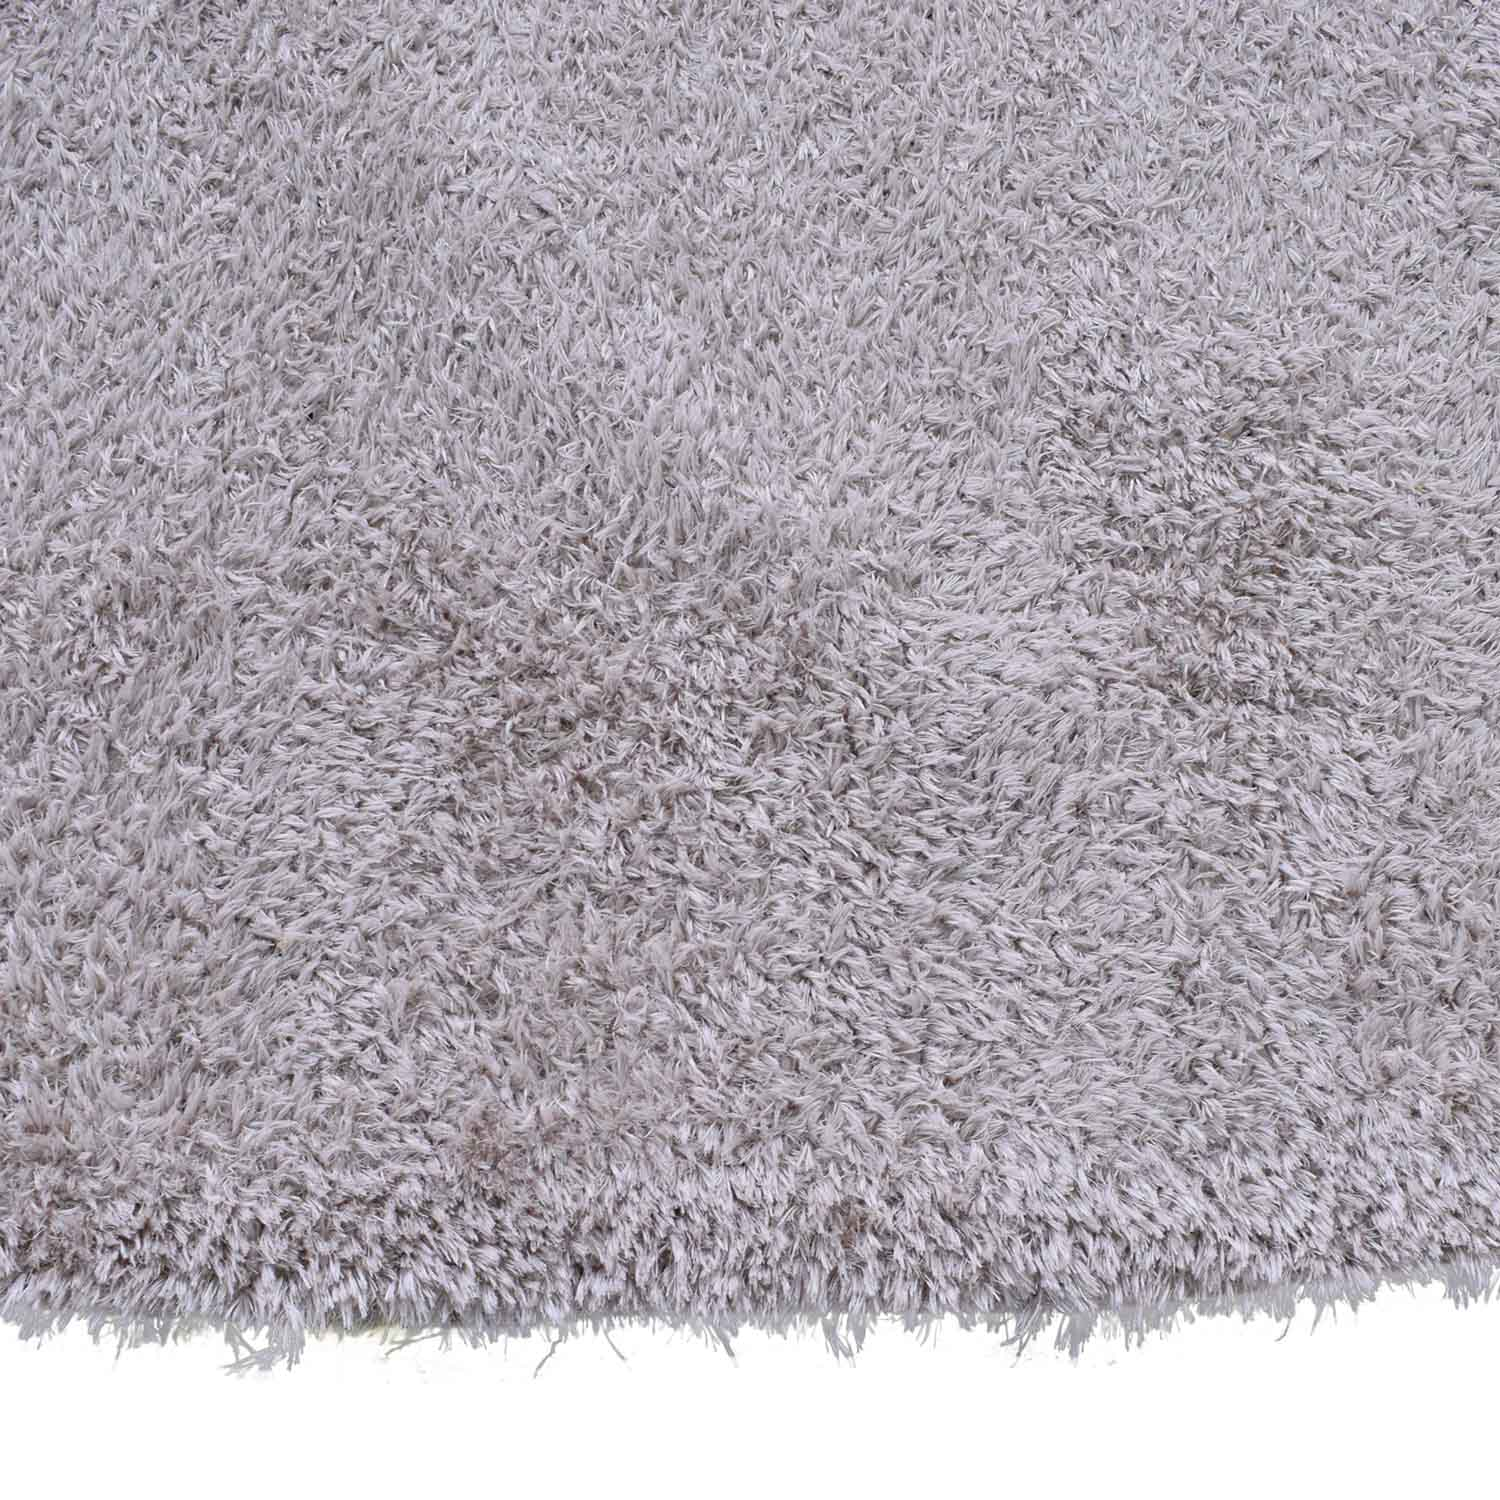 ABC Carpet & Home ABC Carpet & Home Stepevi Touch Me Short Pile Rug used